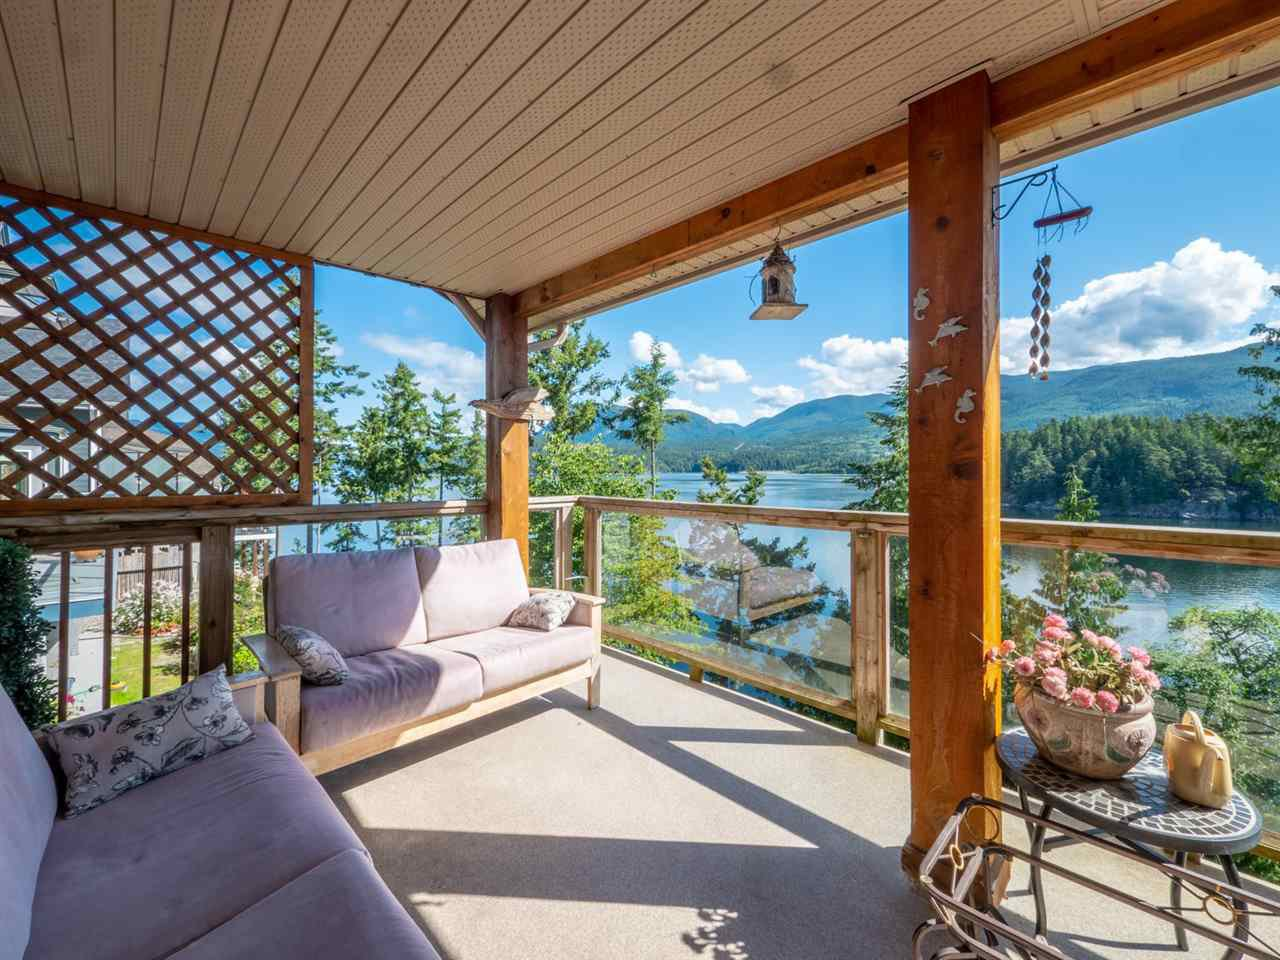 "Photo 13: Photos: 6148 POISE ISLAND Drive in Sechelt: Sechelt District House for sale in ""POISE ISLAND"" (Sunshine Coast)  : MLS®# R2426642"